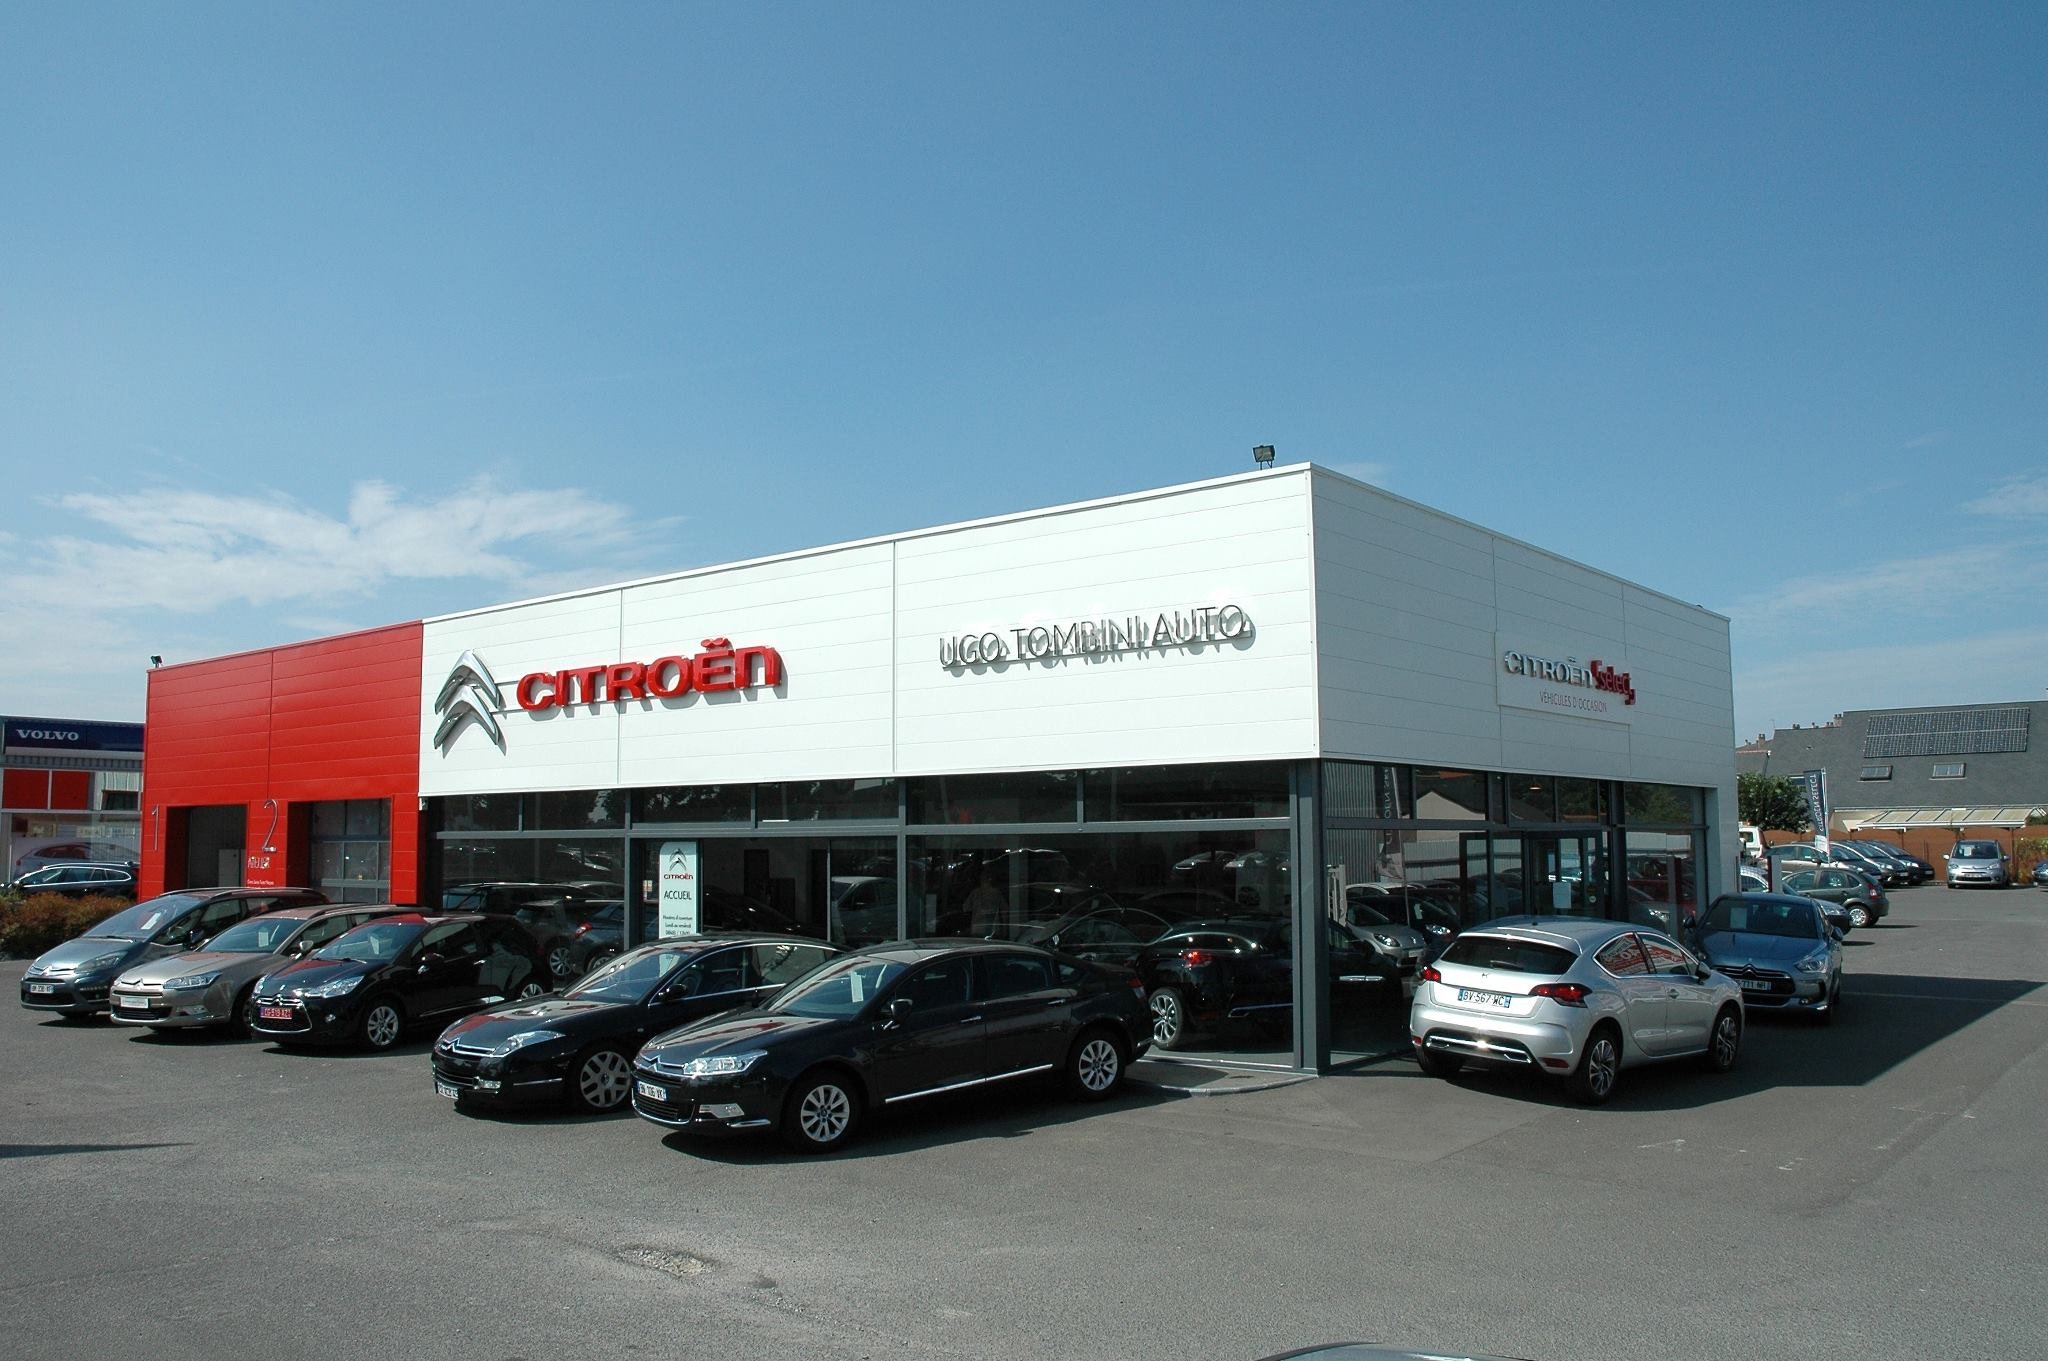 Ugo tombini automobiles voiture occasion angers vente for Garage vente voiture occasion angers